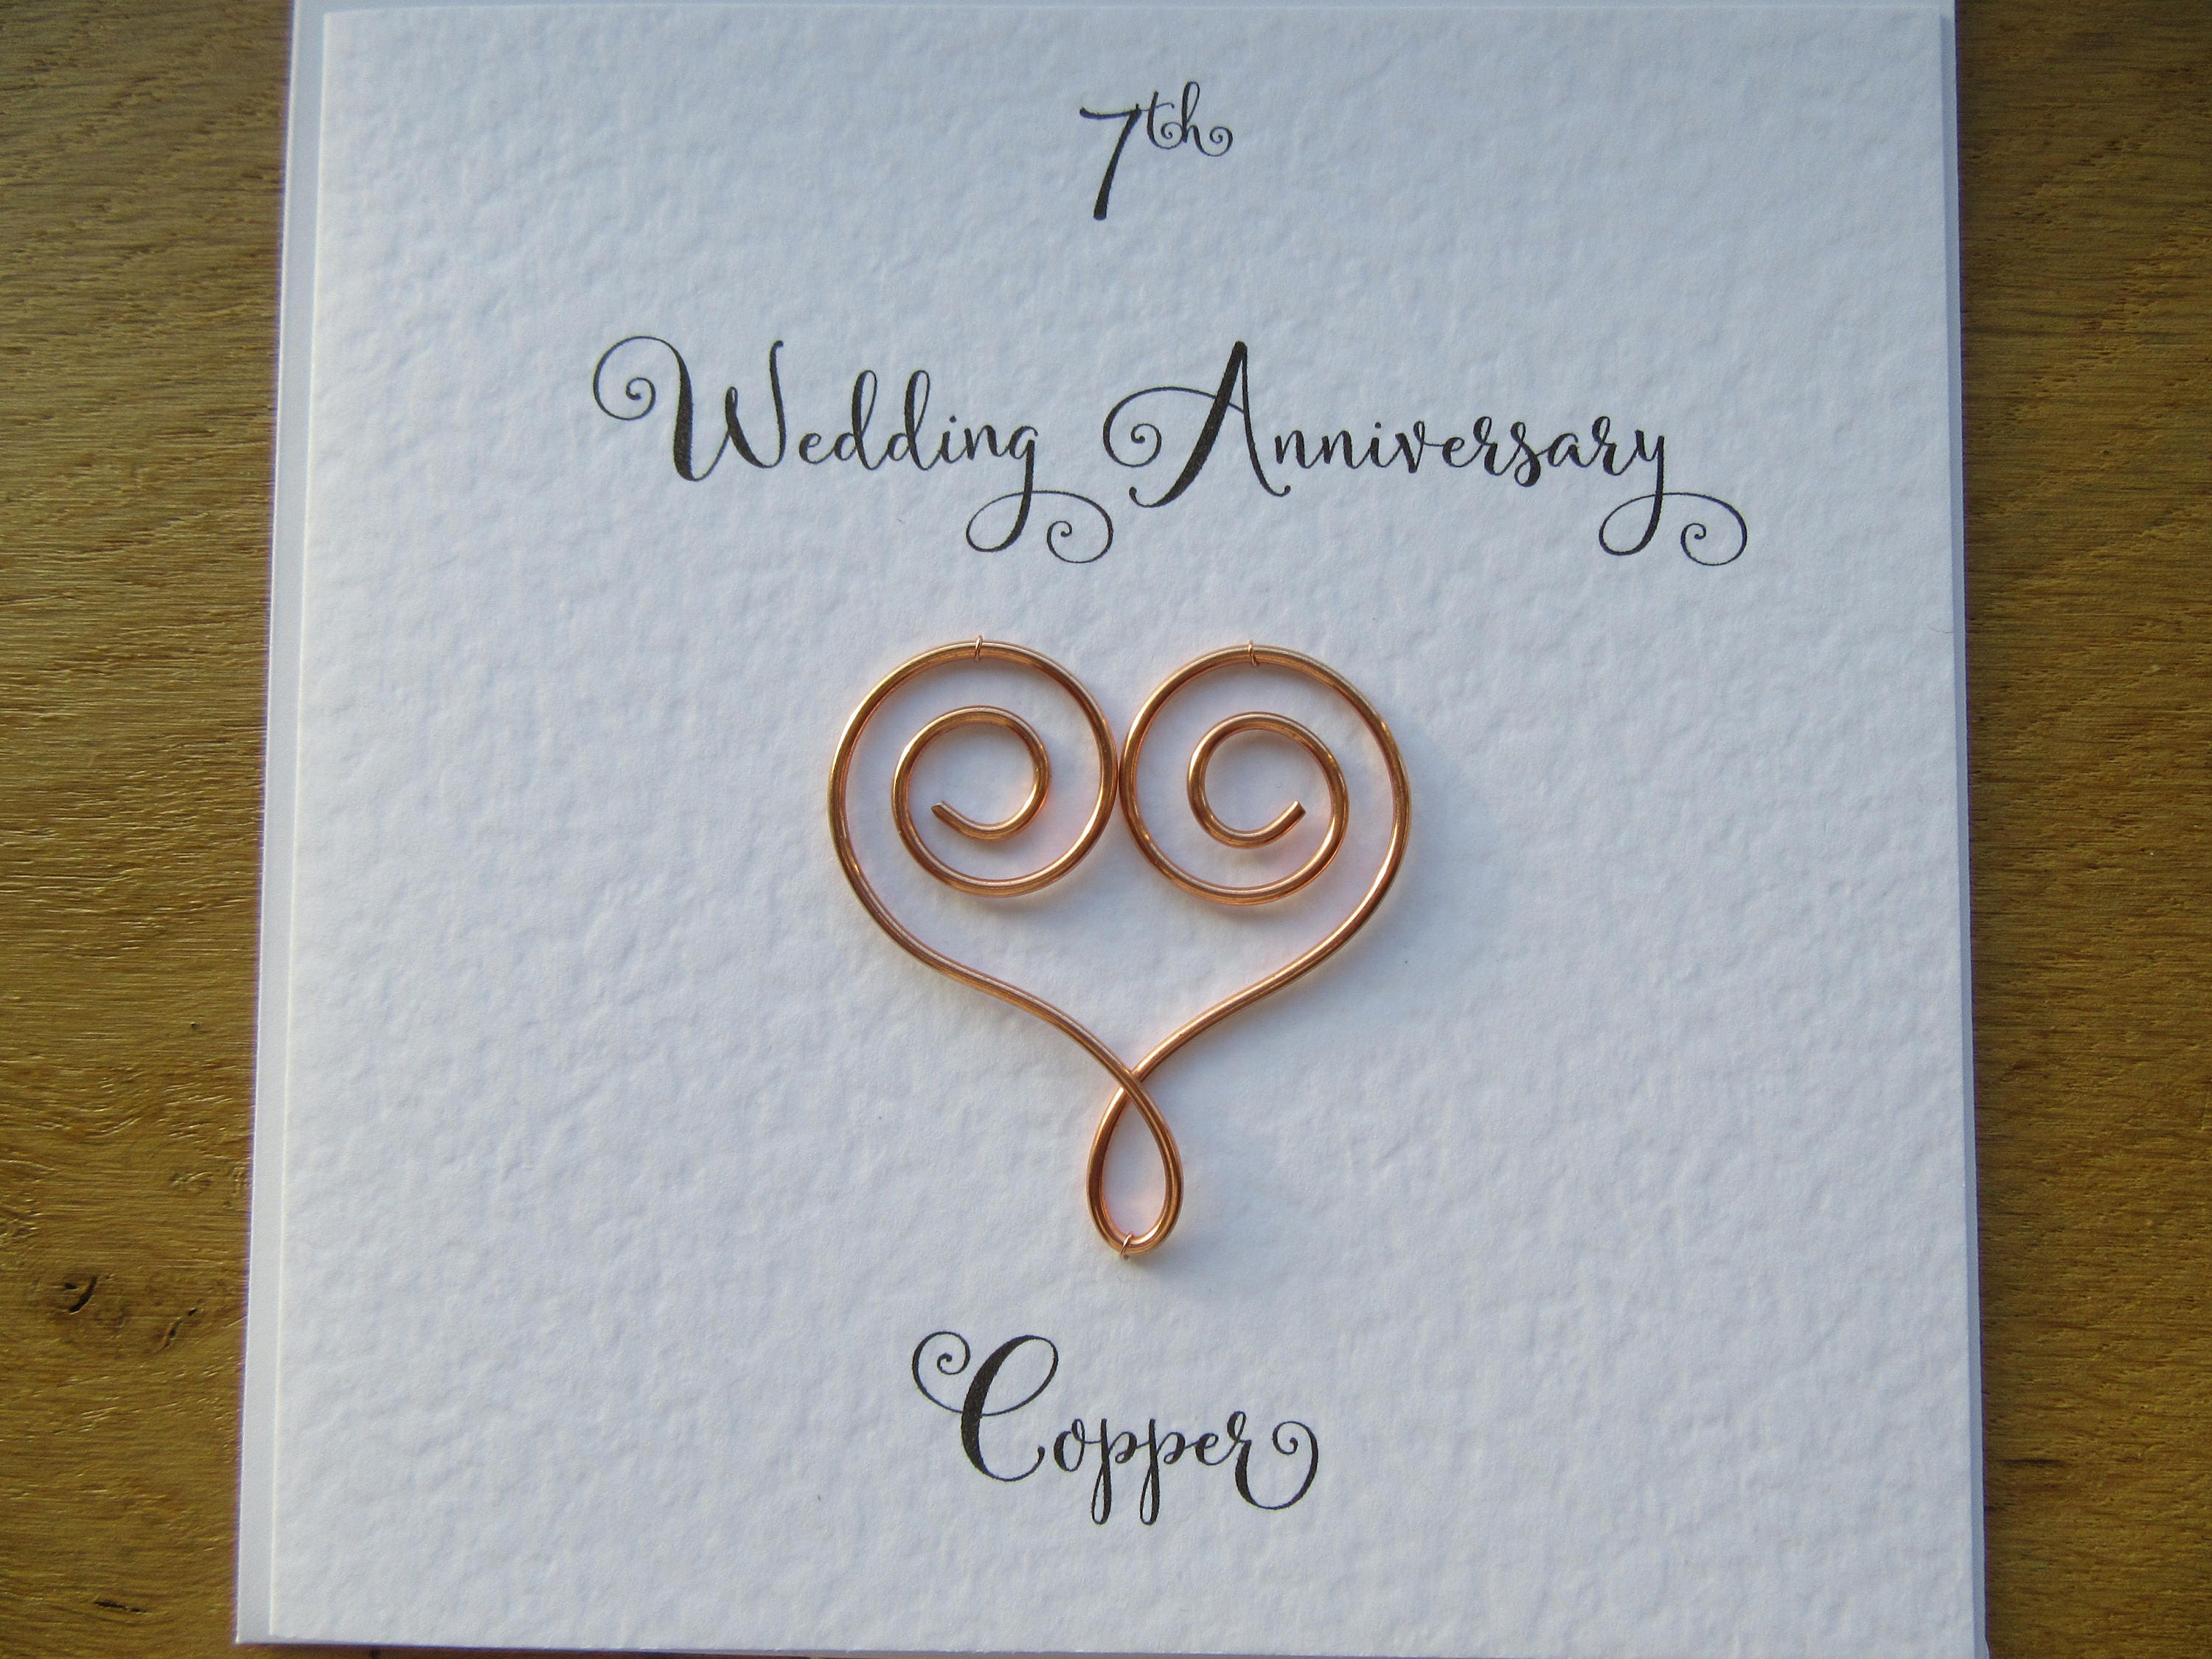 Wedding Anniversary Gifts By Year Uk: 7th Anniversary Card Copper 7 Wedding Anniversary Card